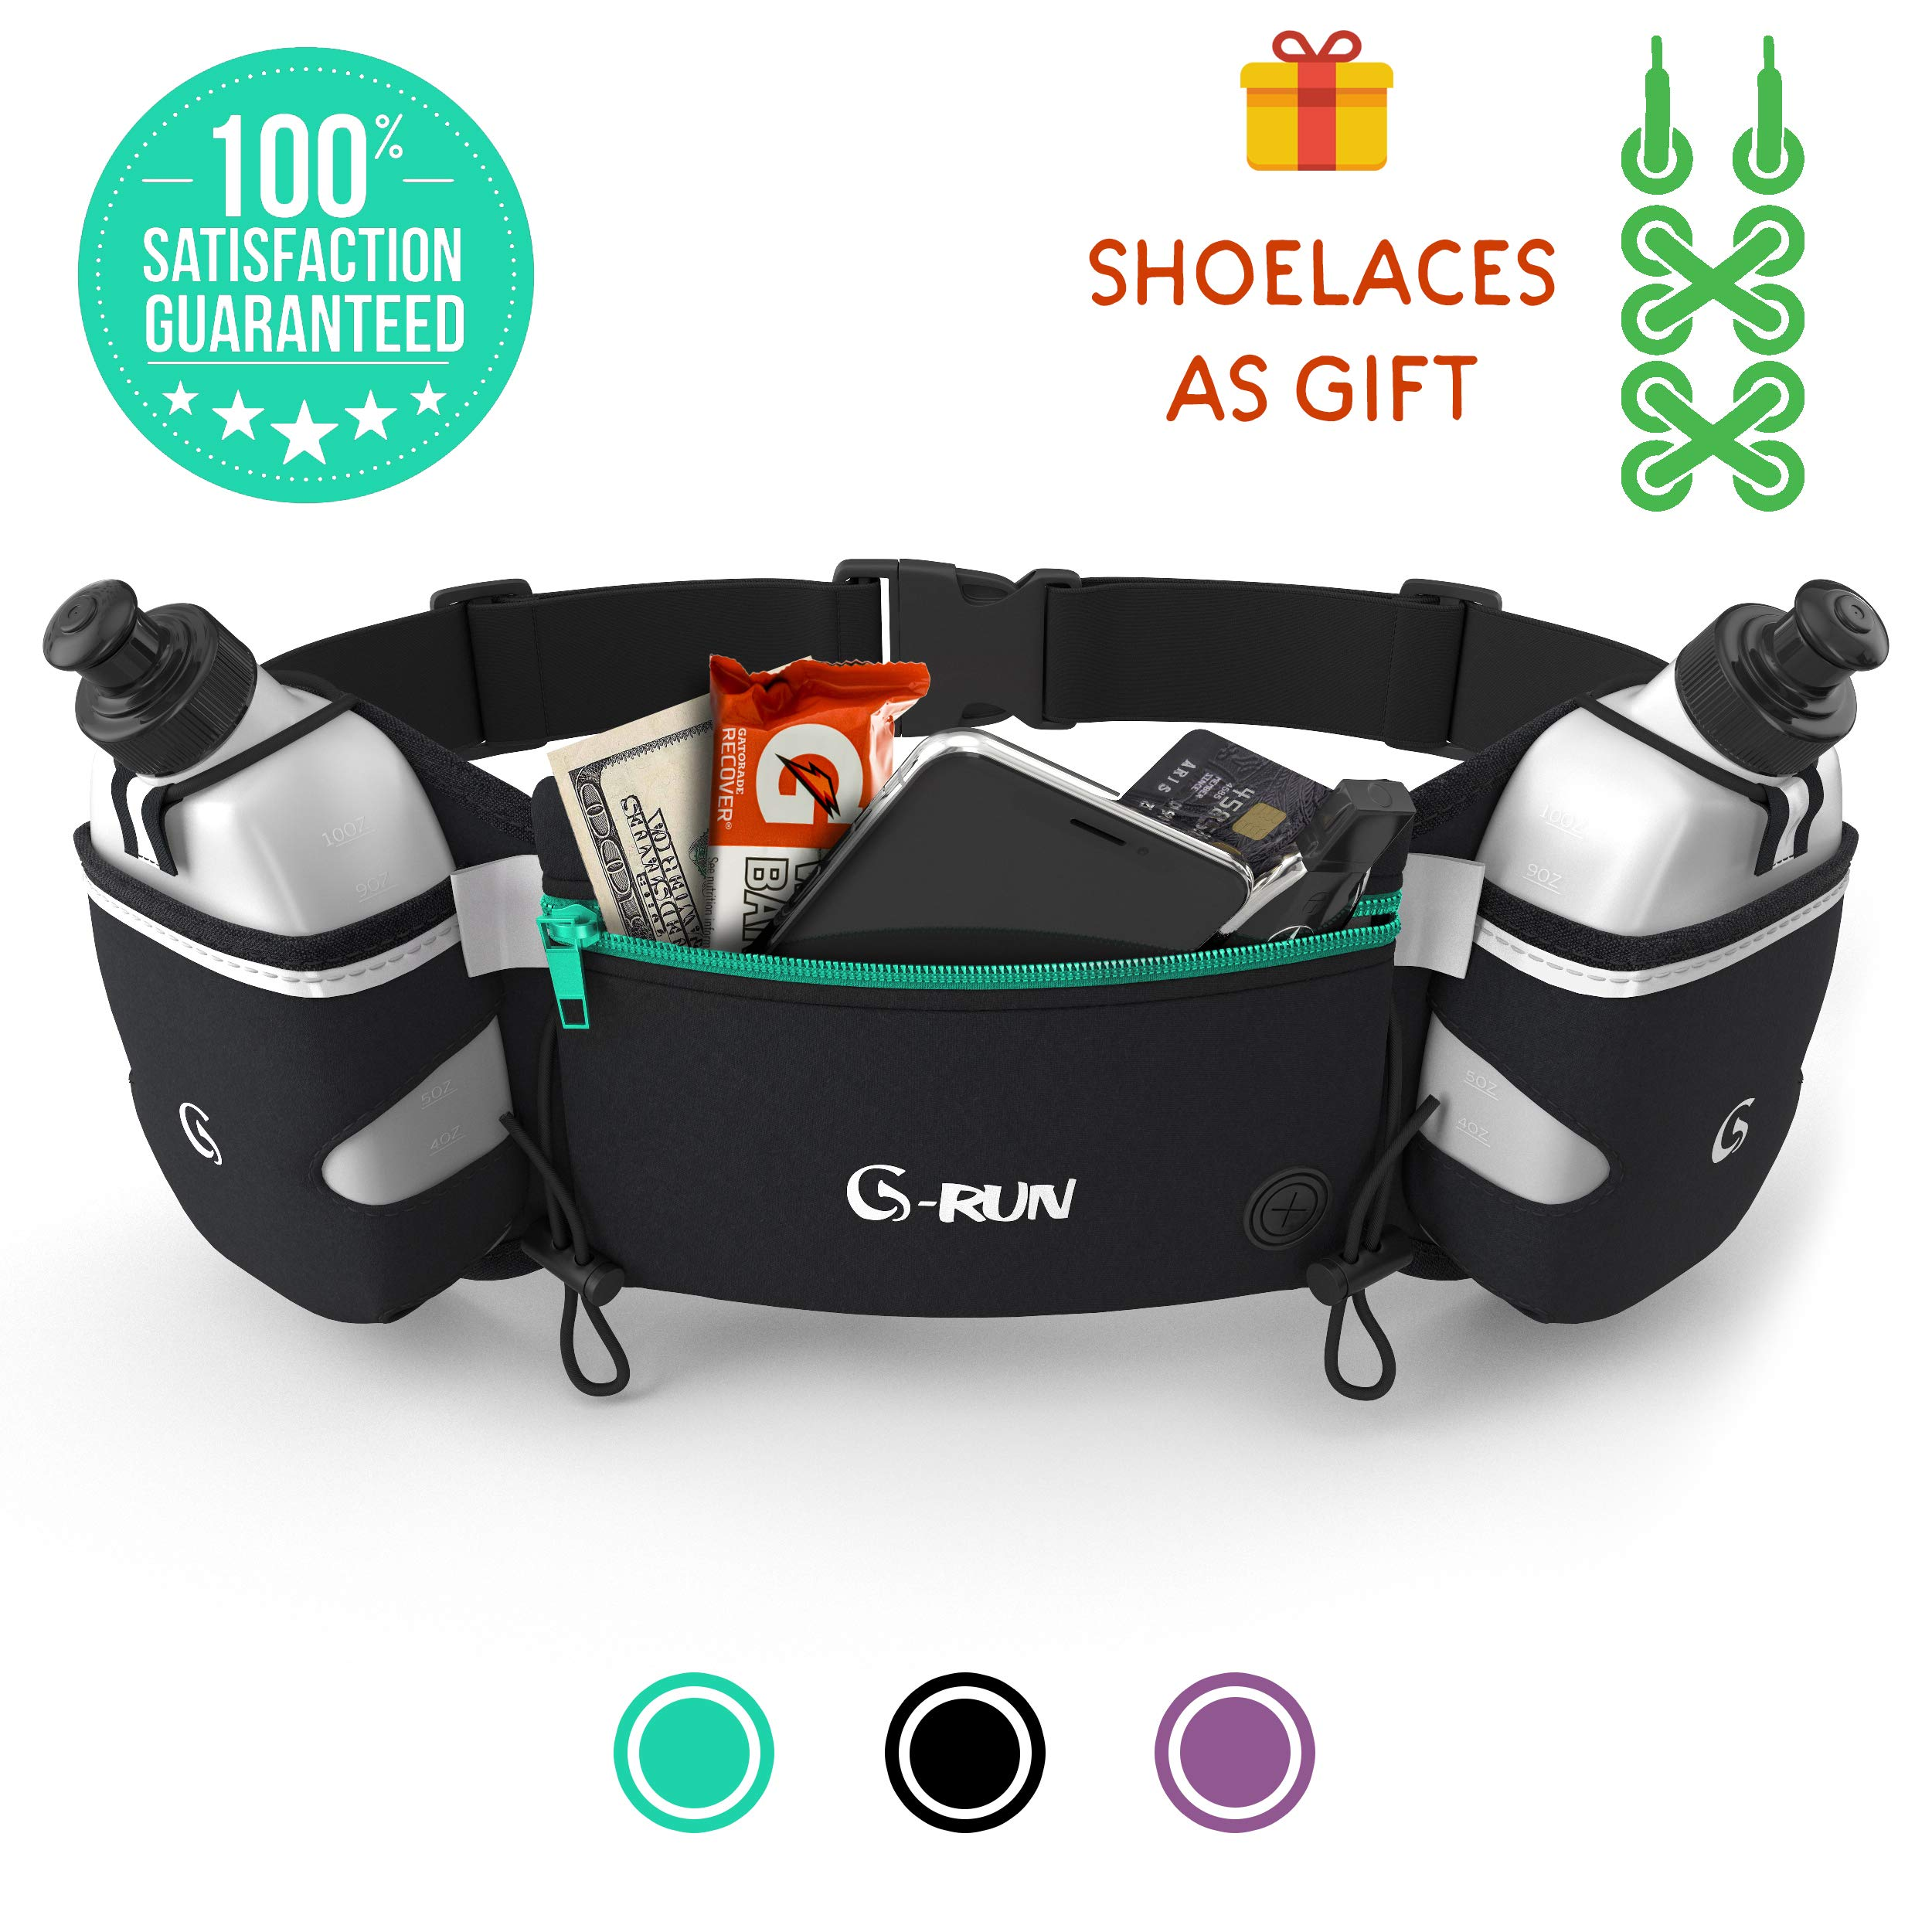 G-RUN Hydration Running Belt with Bottles - Water Belts for Woman and Men - iPhone Belt for Any Phone Size - Fuel Marathon Race Pack for Runners by G-RUN